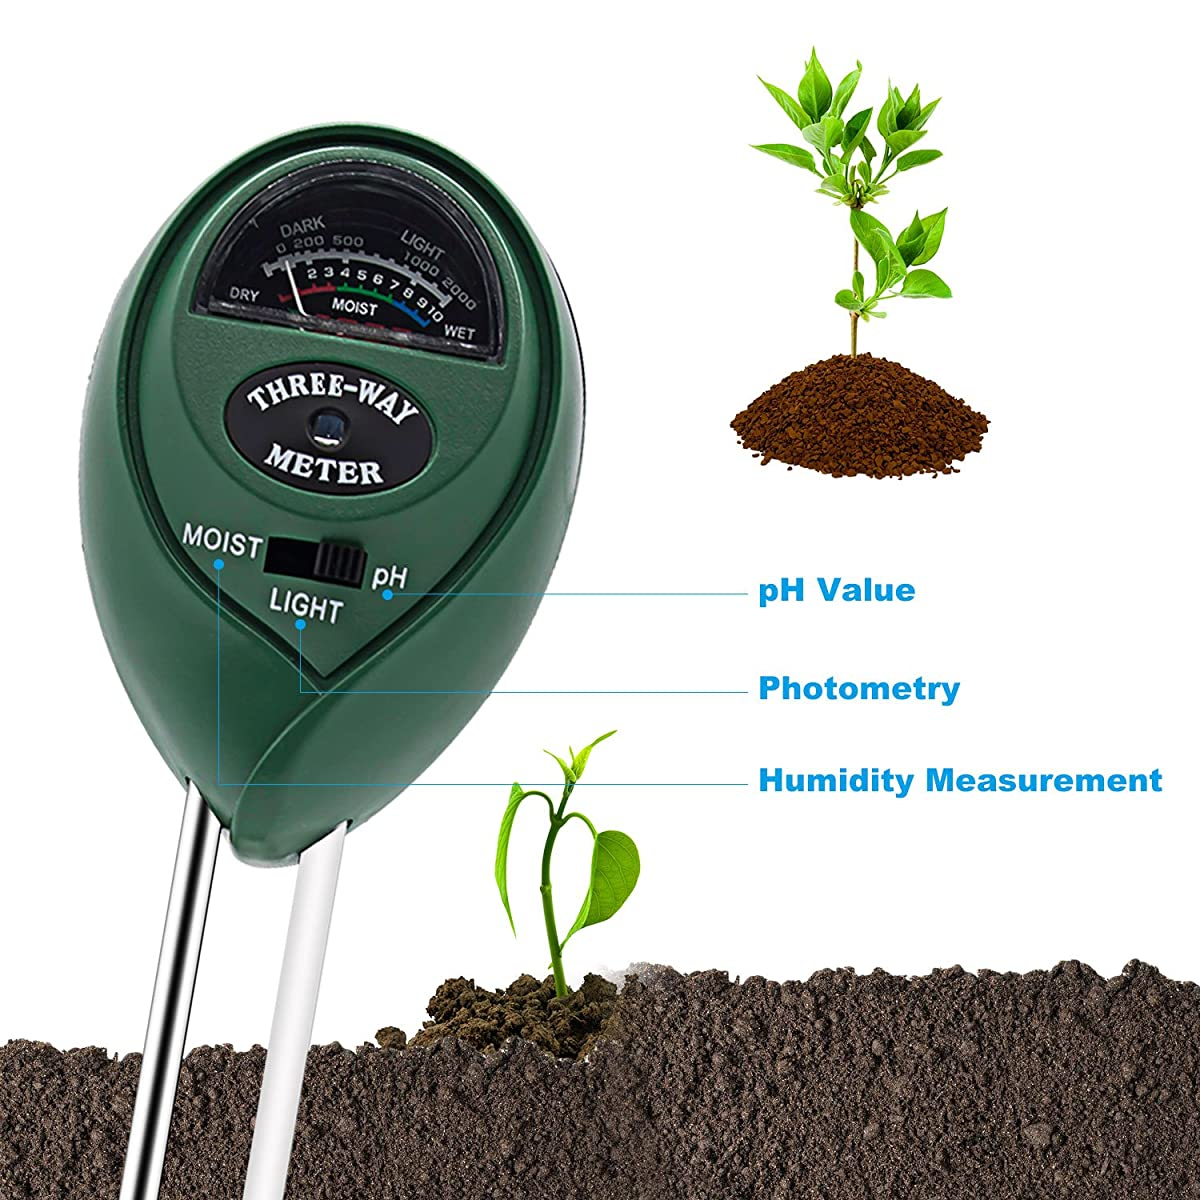 Soil Tester, Deepow 3-in-1 Soil Moisture Meter, Soil Ph Meter Kit for Moisture, Light & pH - Helpful for Garden, Lawn, Indoor & Outdoor, High Accurate & Easy Read Indicator (No Battery needed)